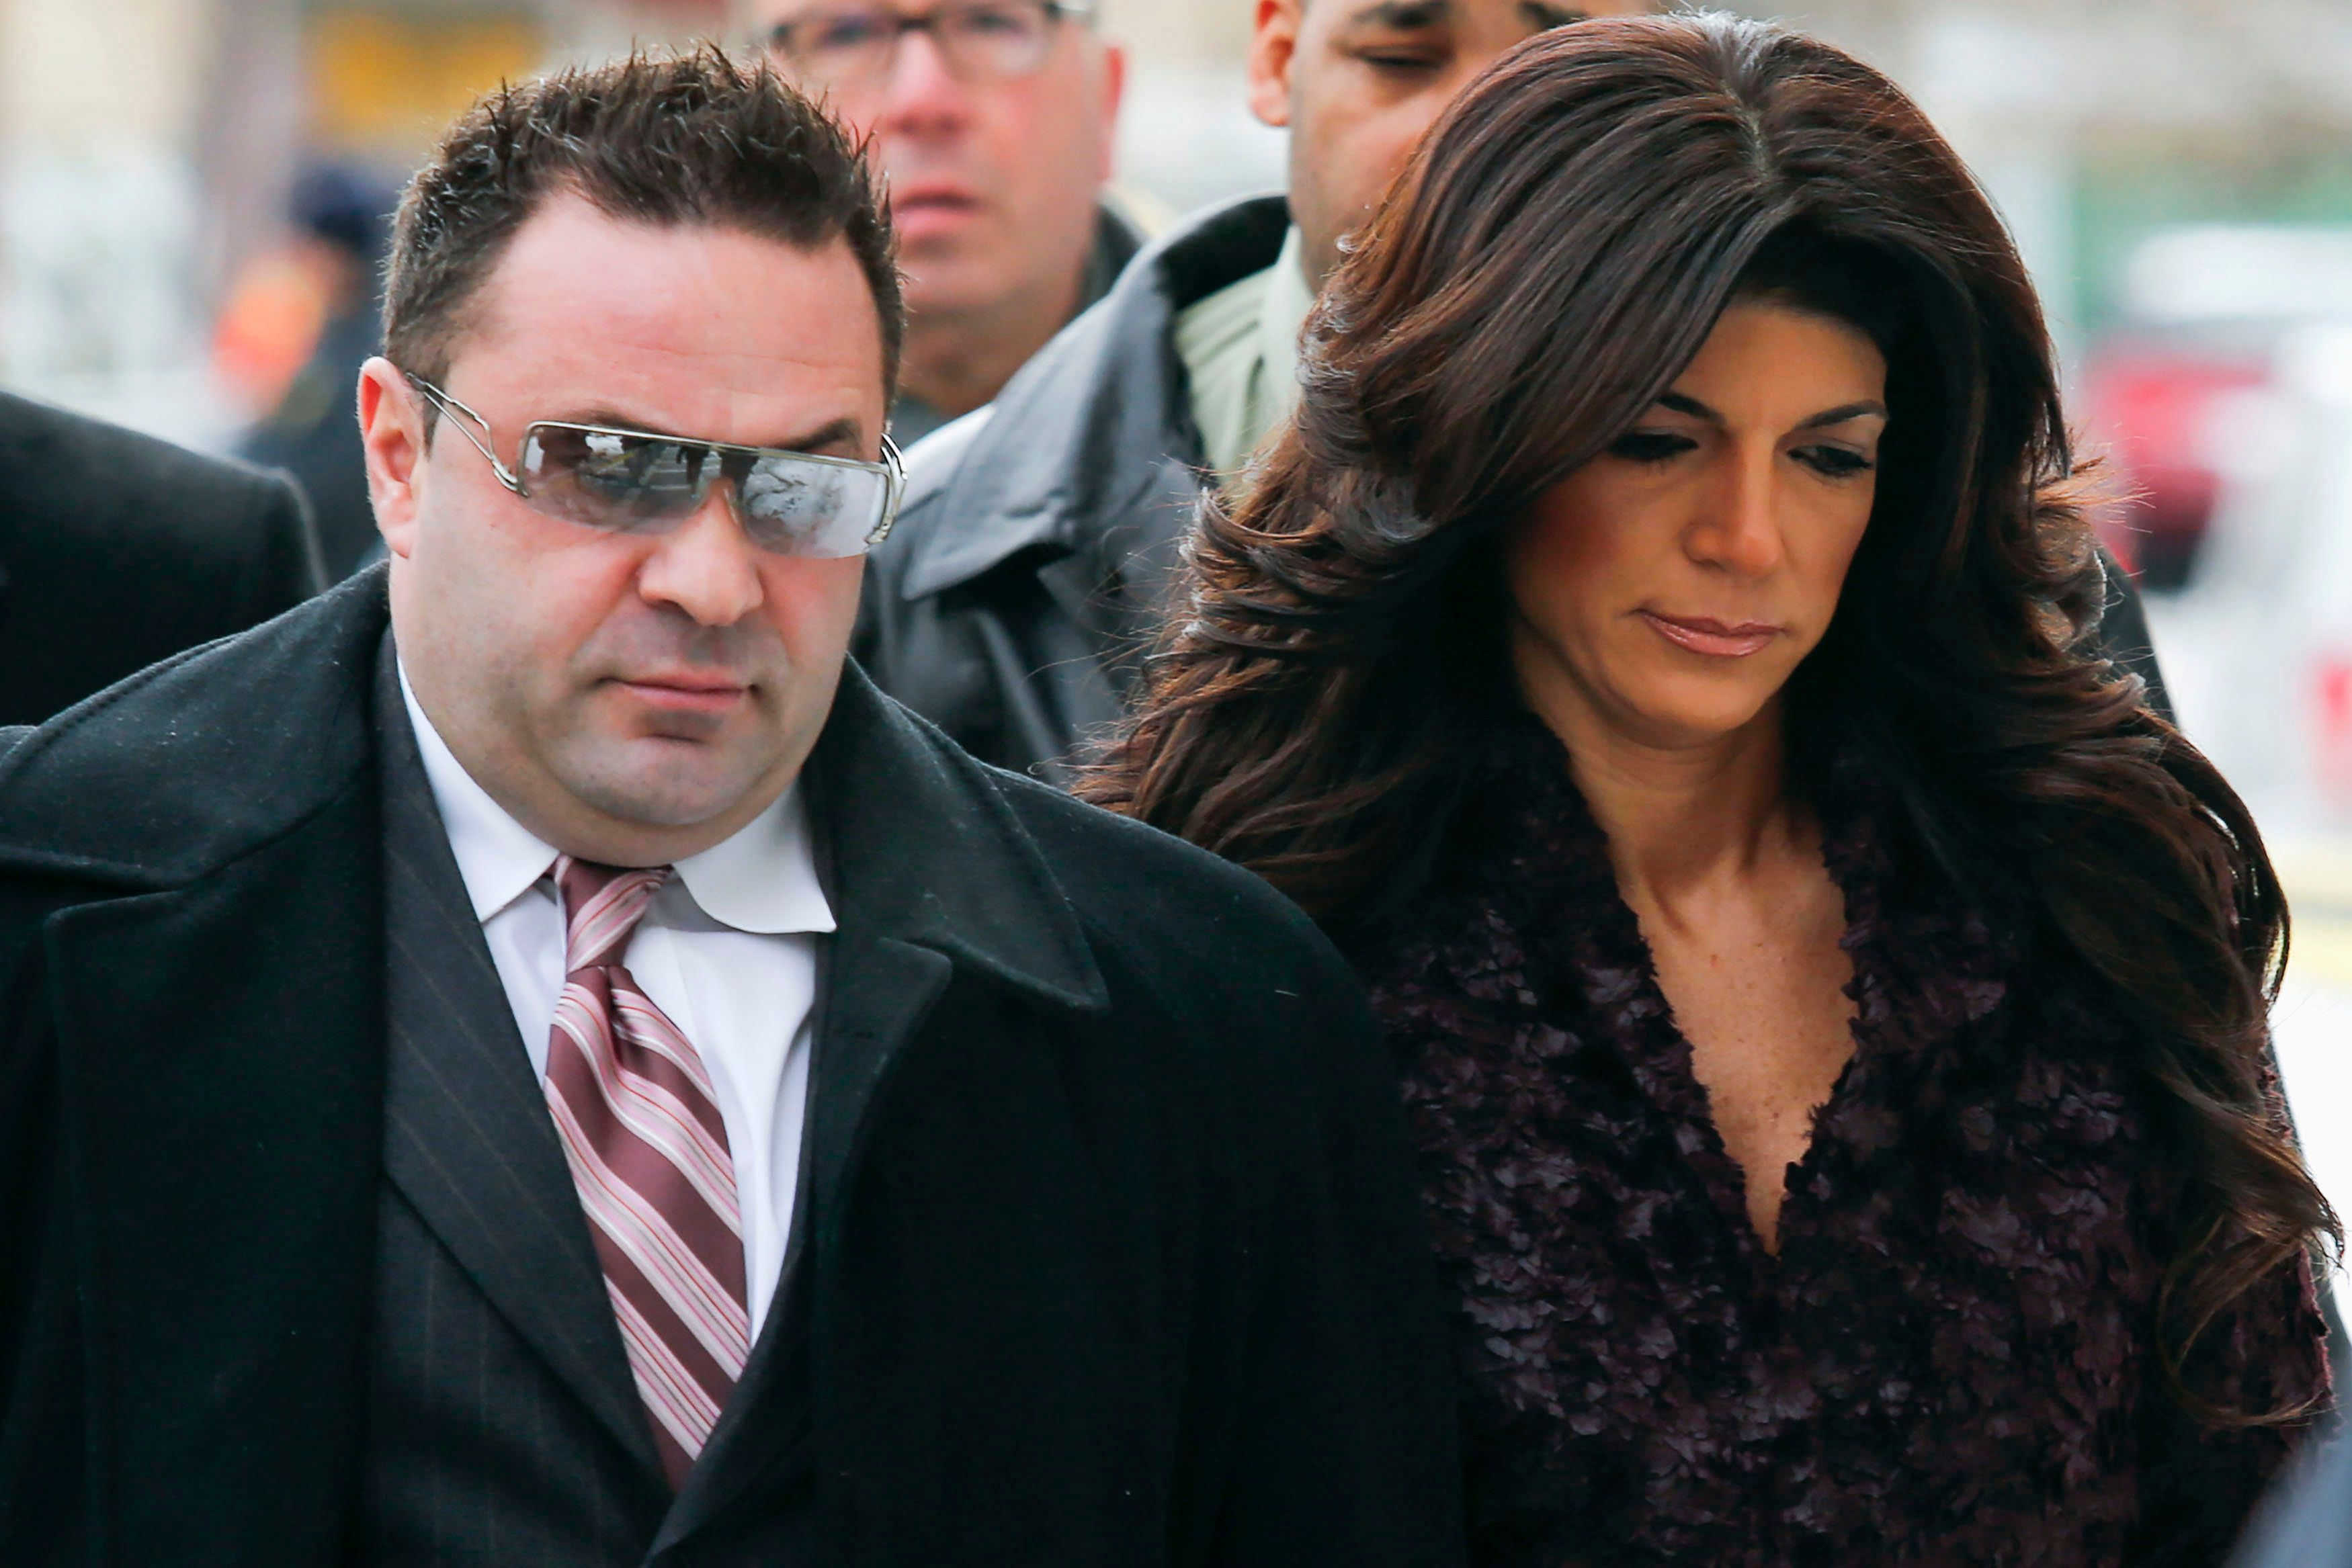 'Real Housewives Of New Jersey' Star Joe Giudice To Be Deported After Prison